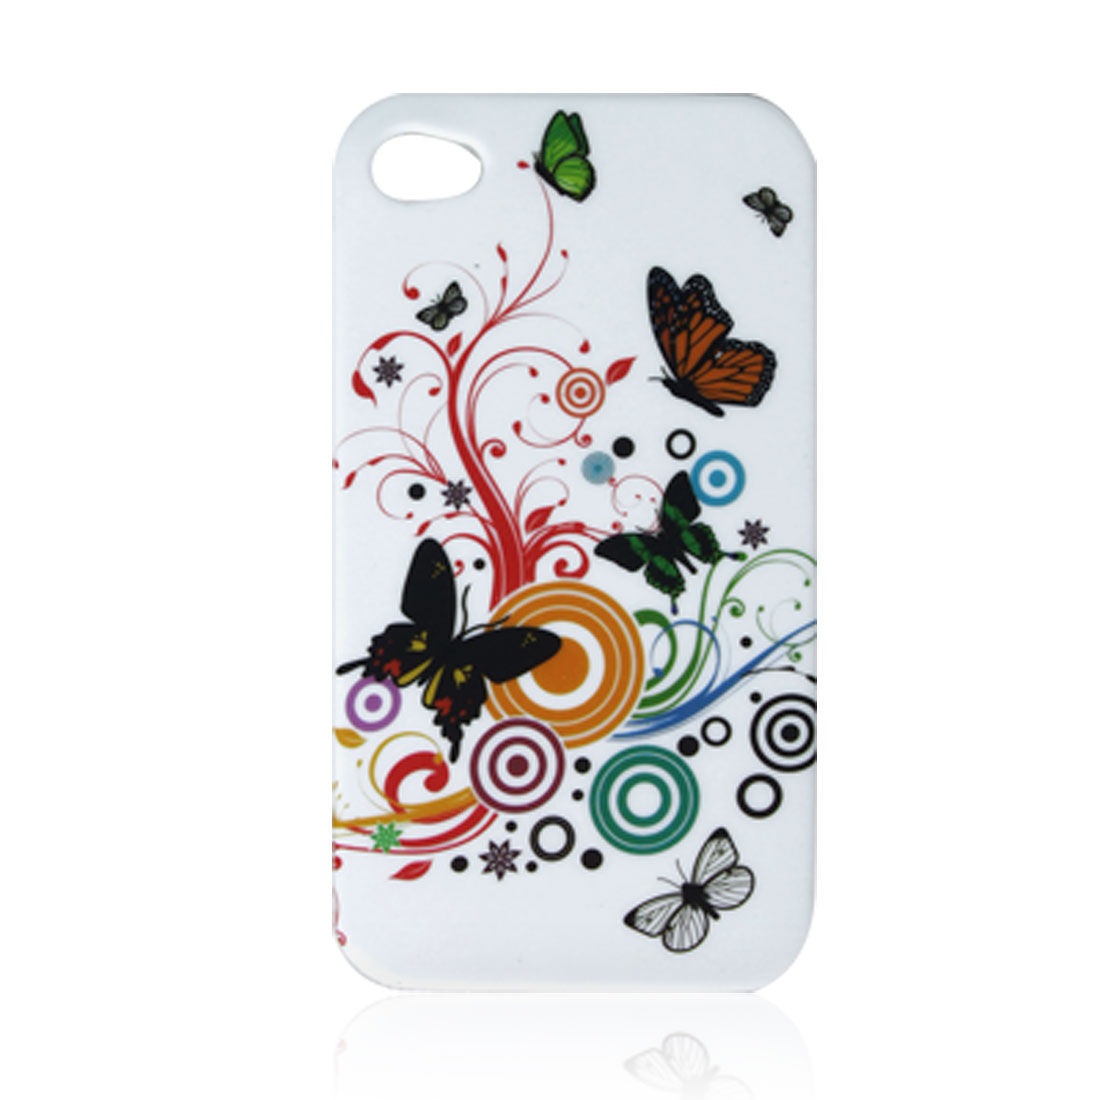 White Butterfly Print Case Protector for Apple iPhone 4 4G